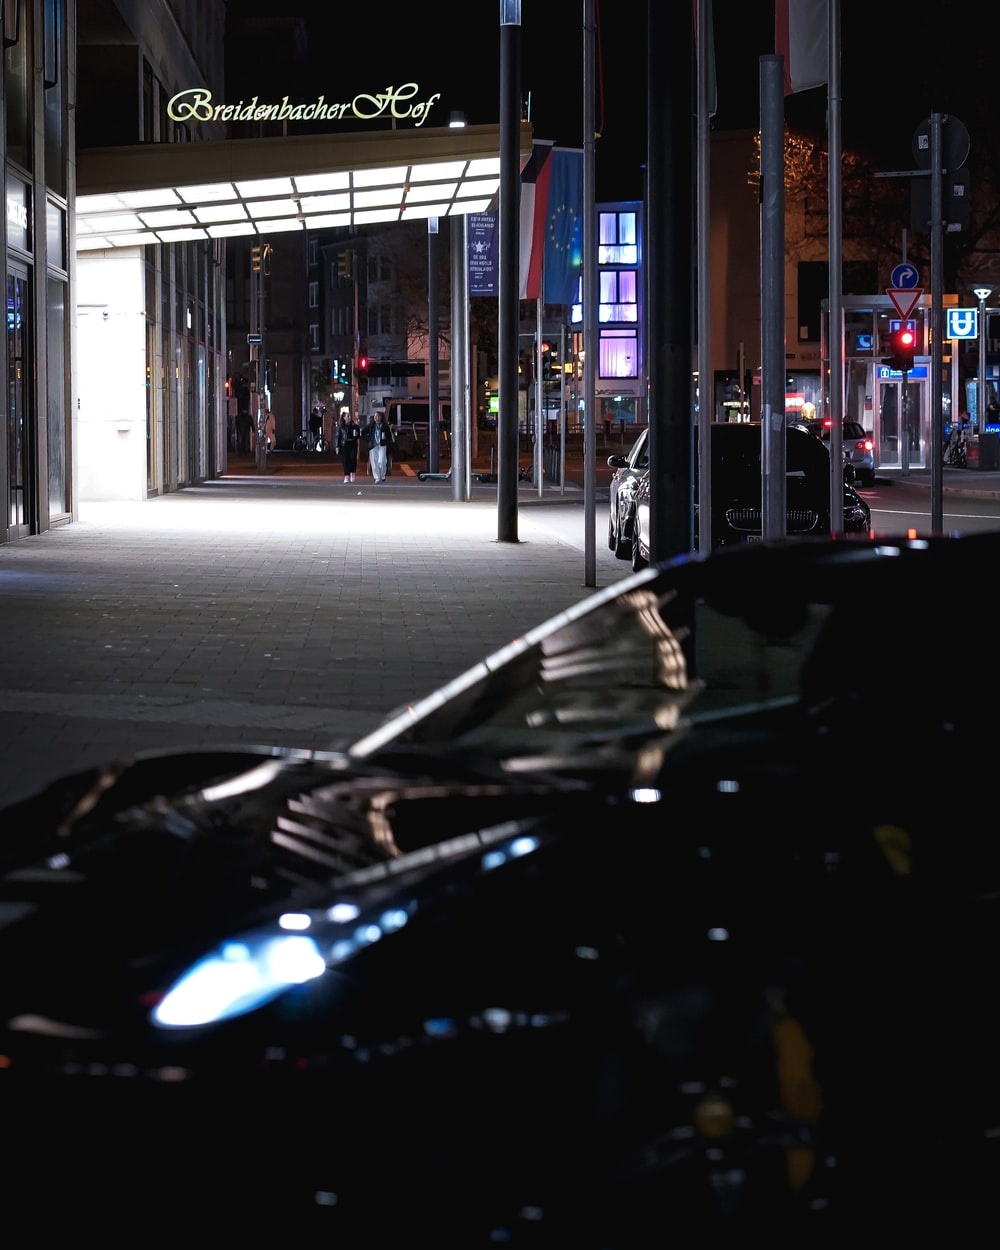 black car parked near building during night time